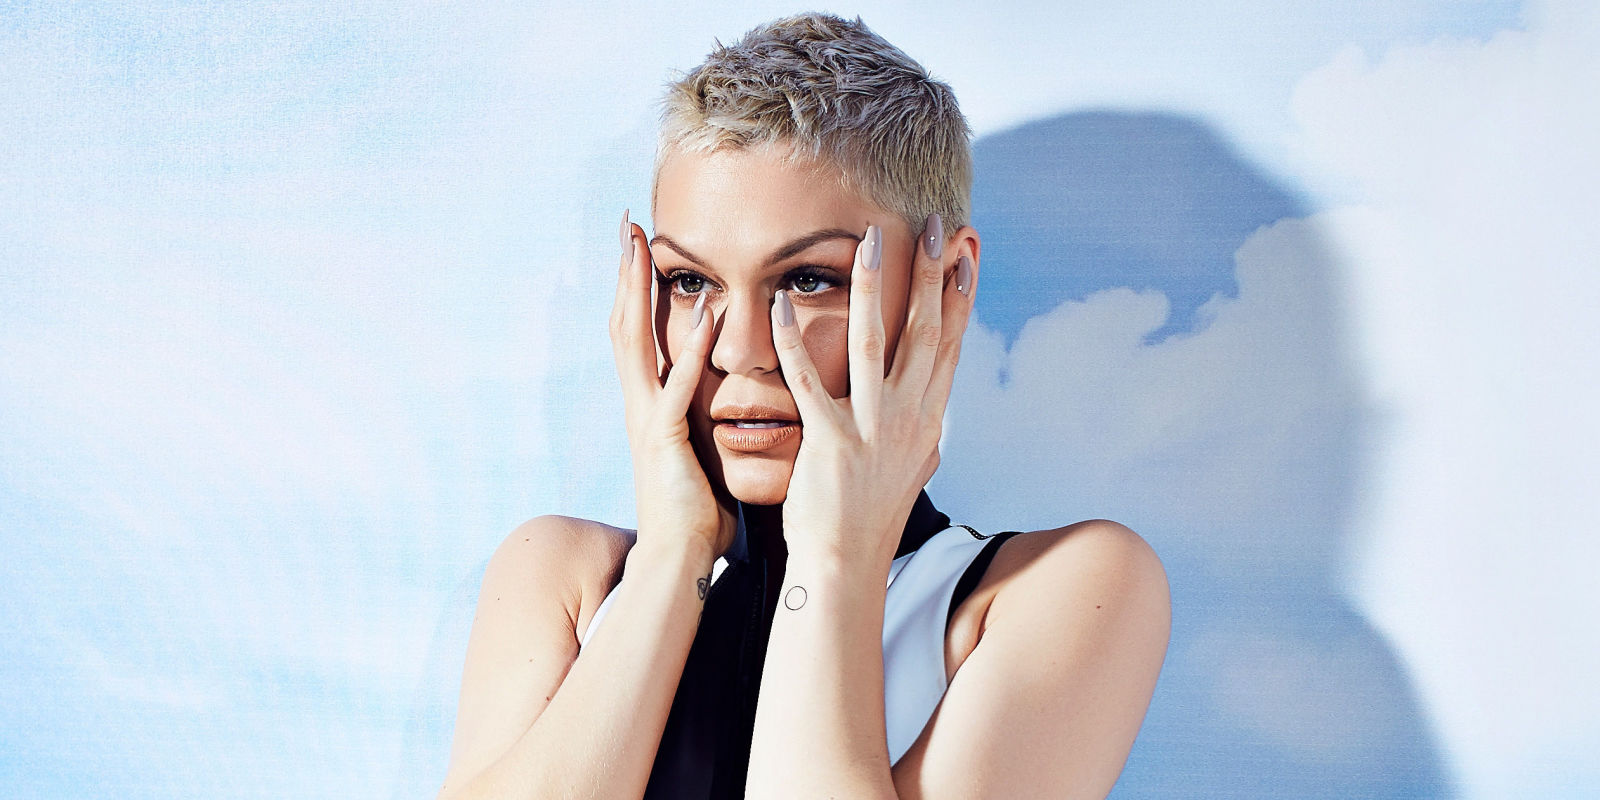 Jessie J is sad the UK doesnt celebrate her as one of the